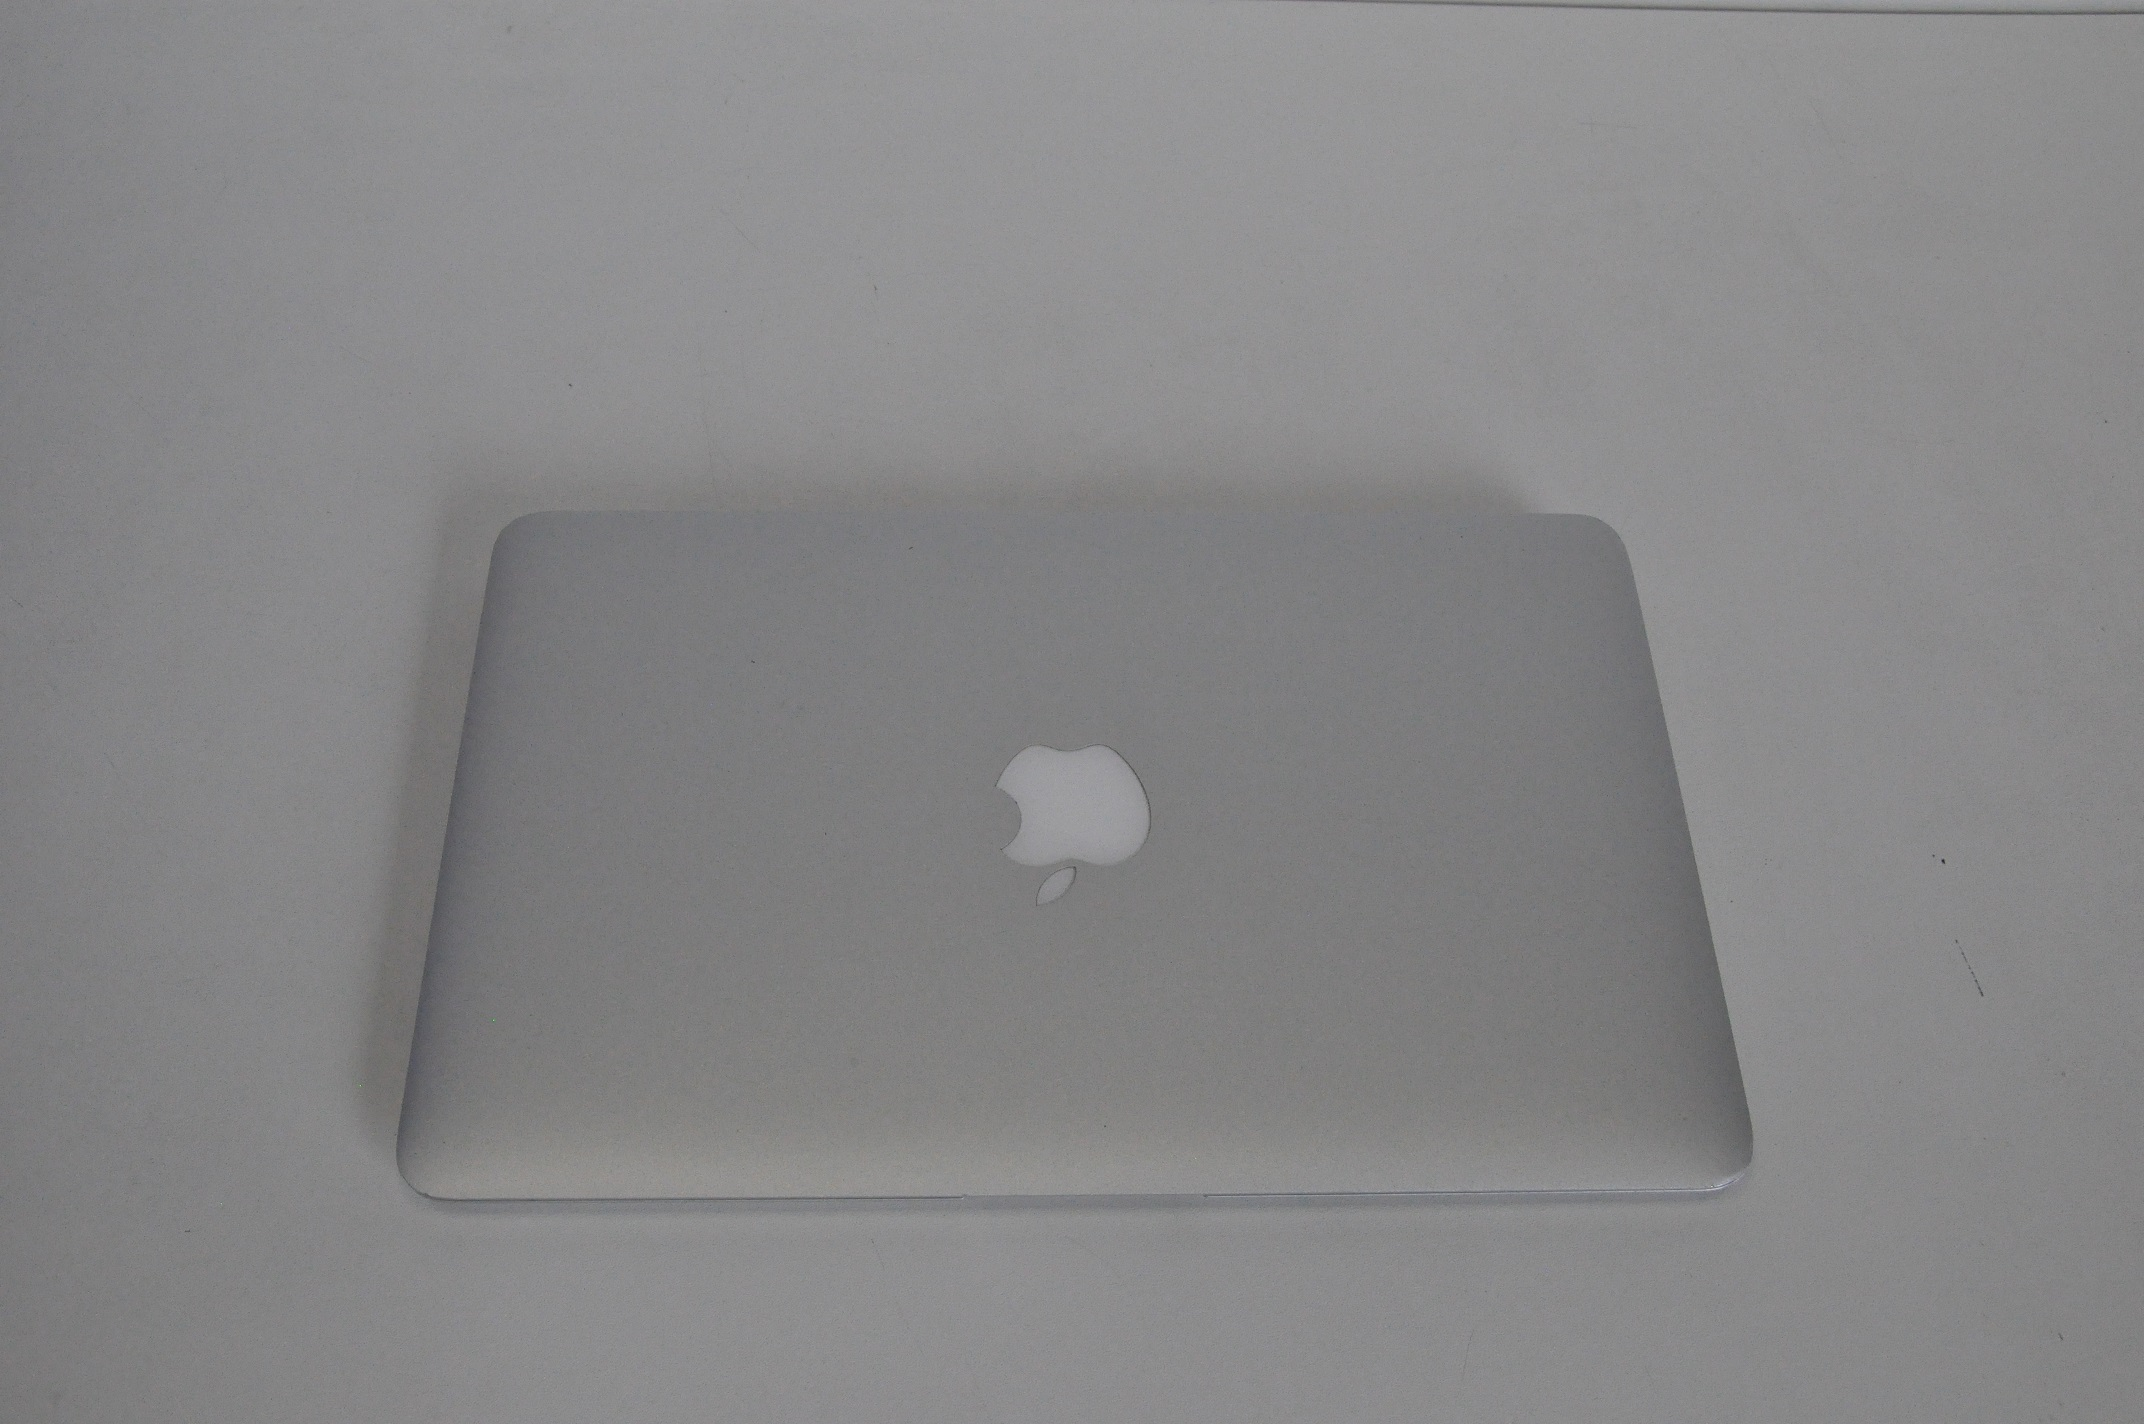 Apple MacBook Air 11inch Intel Core i5, 4GB, 128GB SSD MC968BA (2011)